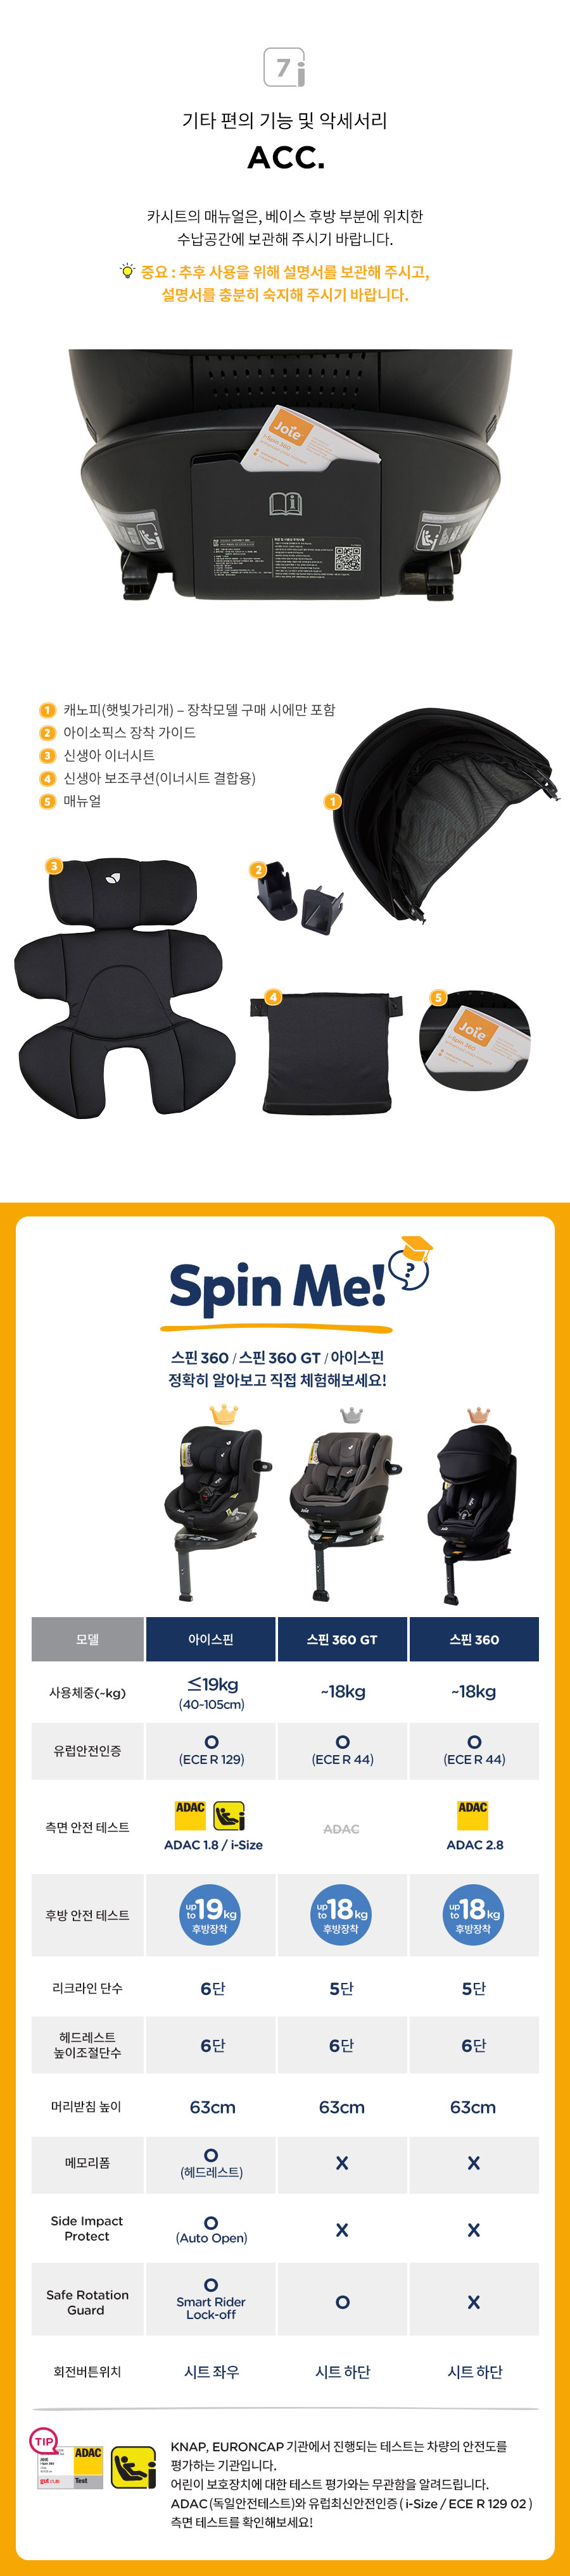 2019 ispin360